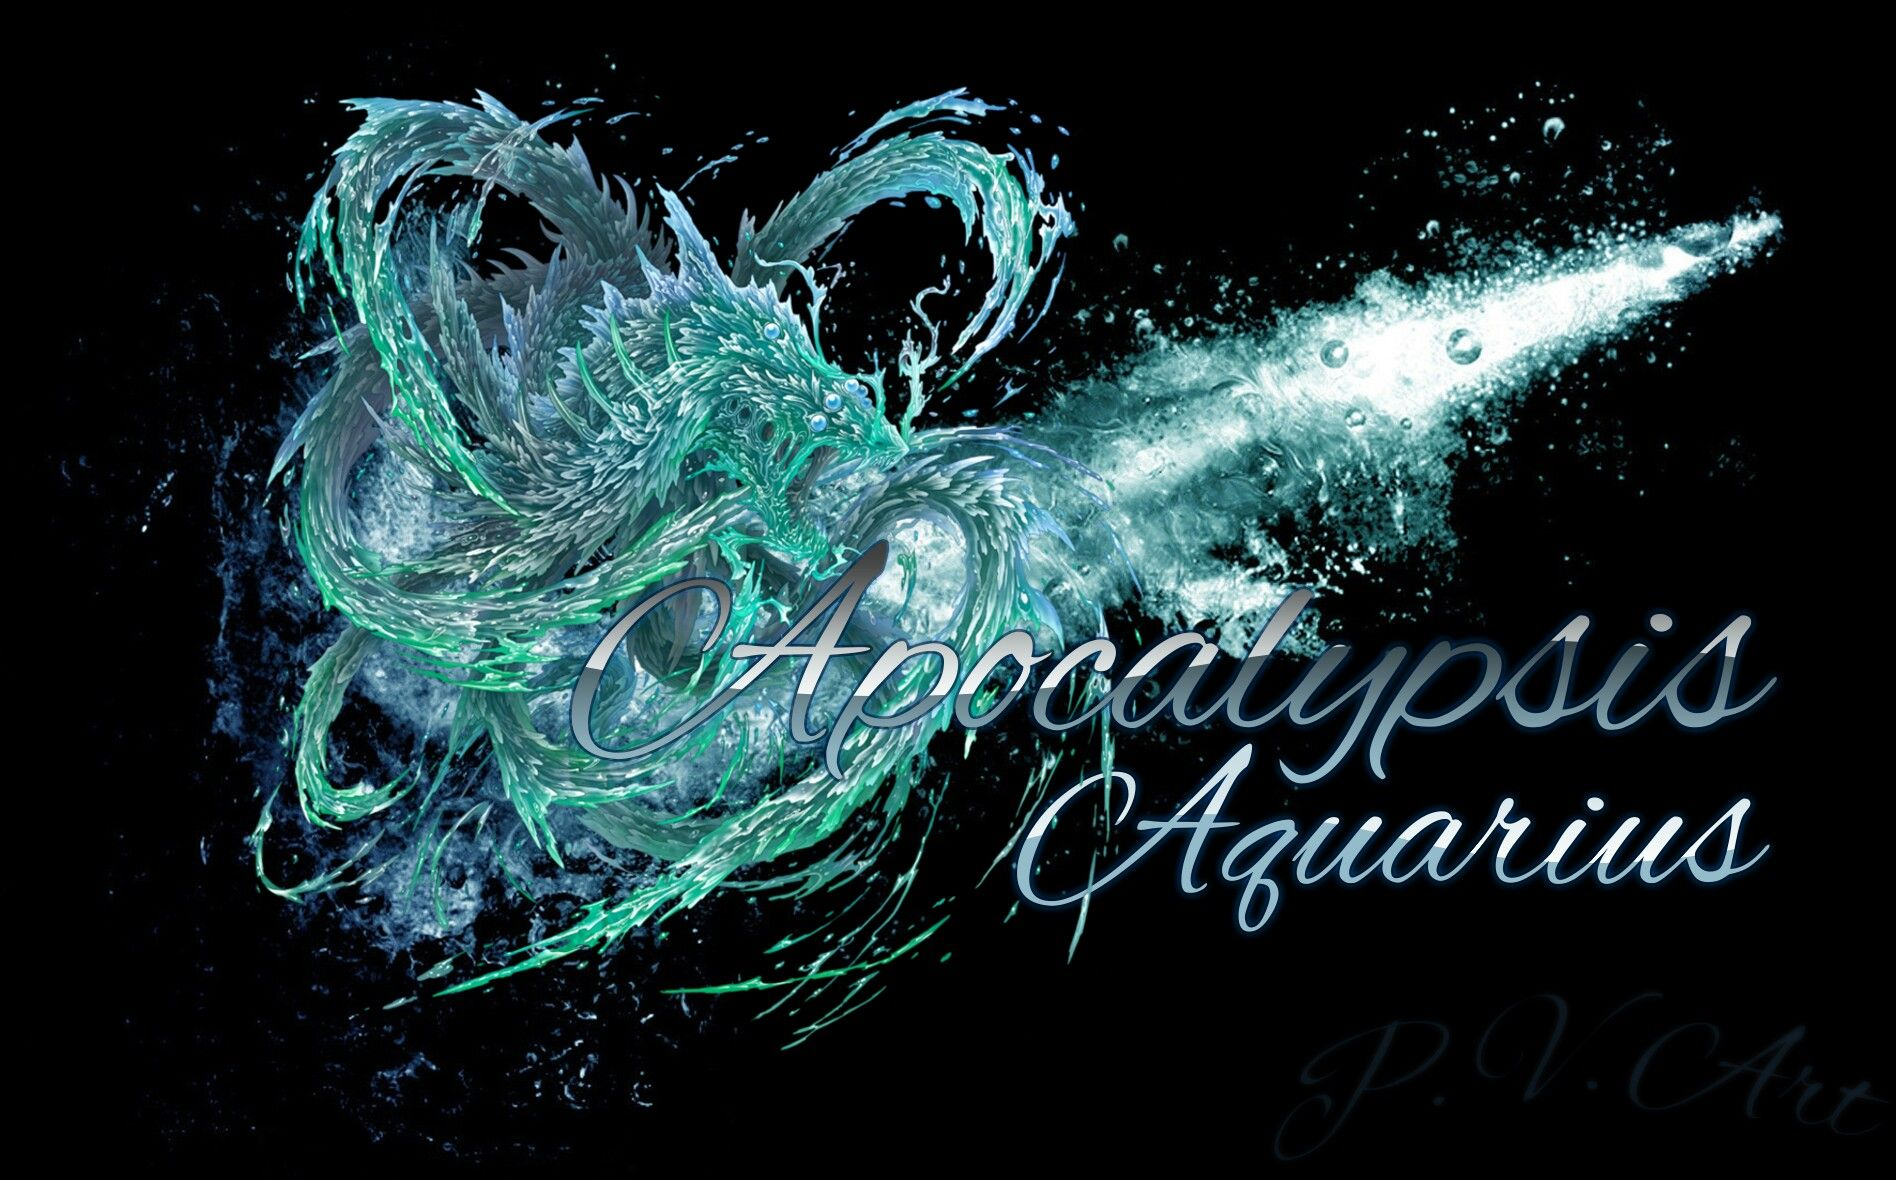 Apocalypsis Aquarius 2017 Wallpaper